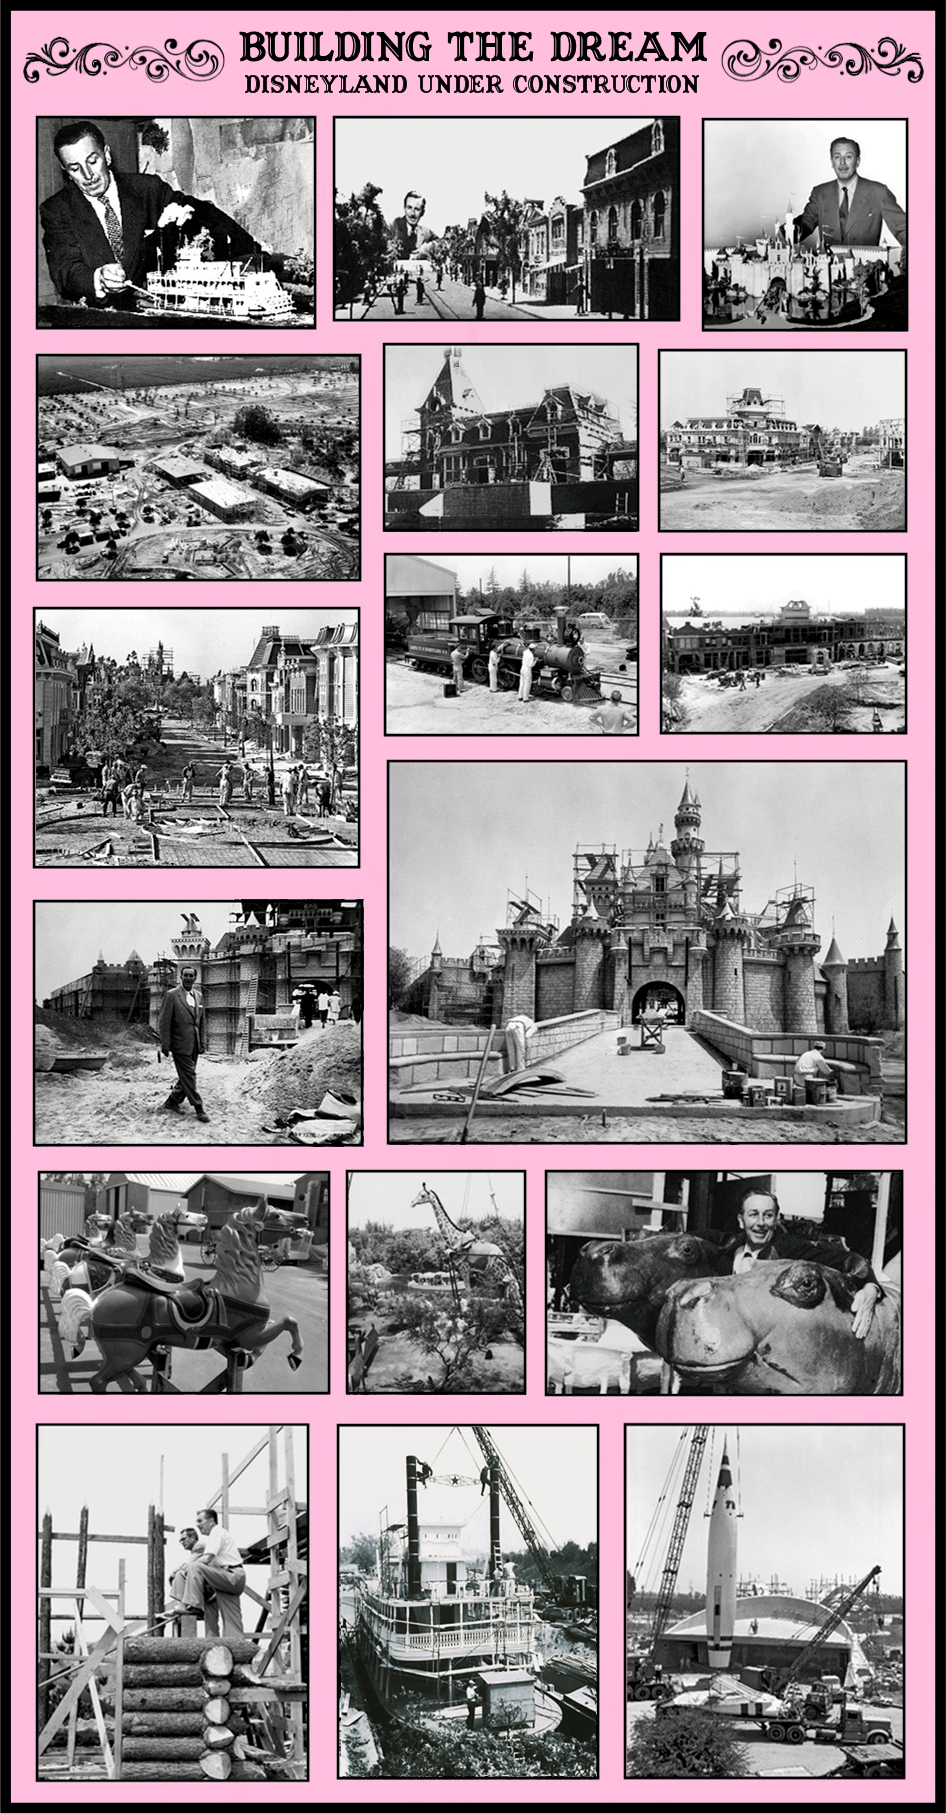 DisneylandStoryCollageB